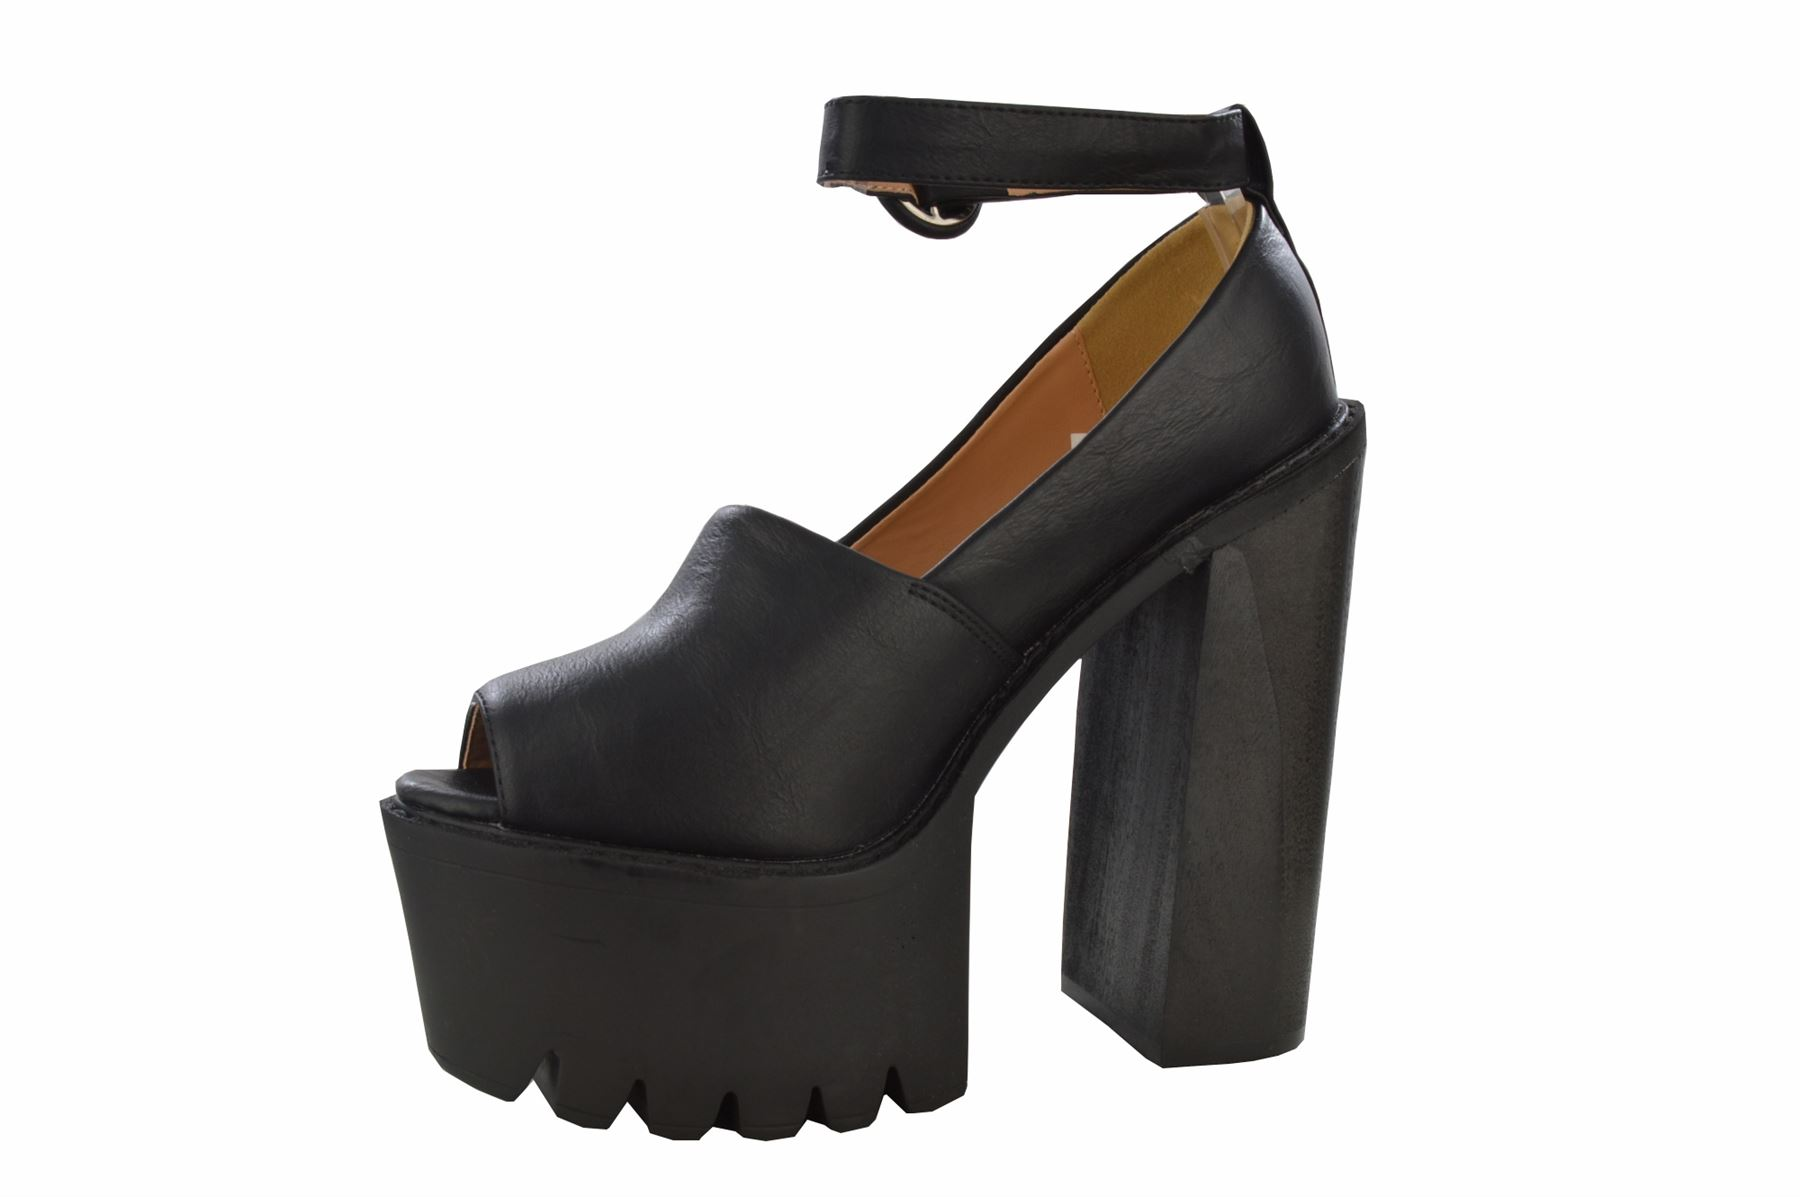 Womens Chunky High Heel Cleated Platform Tractor Sole Ankle Strap Peep Toe Shoes